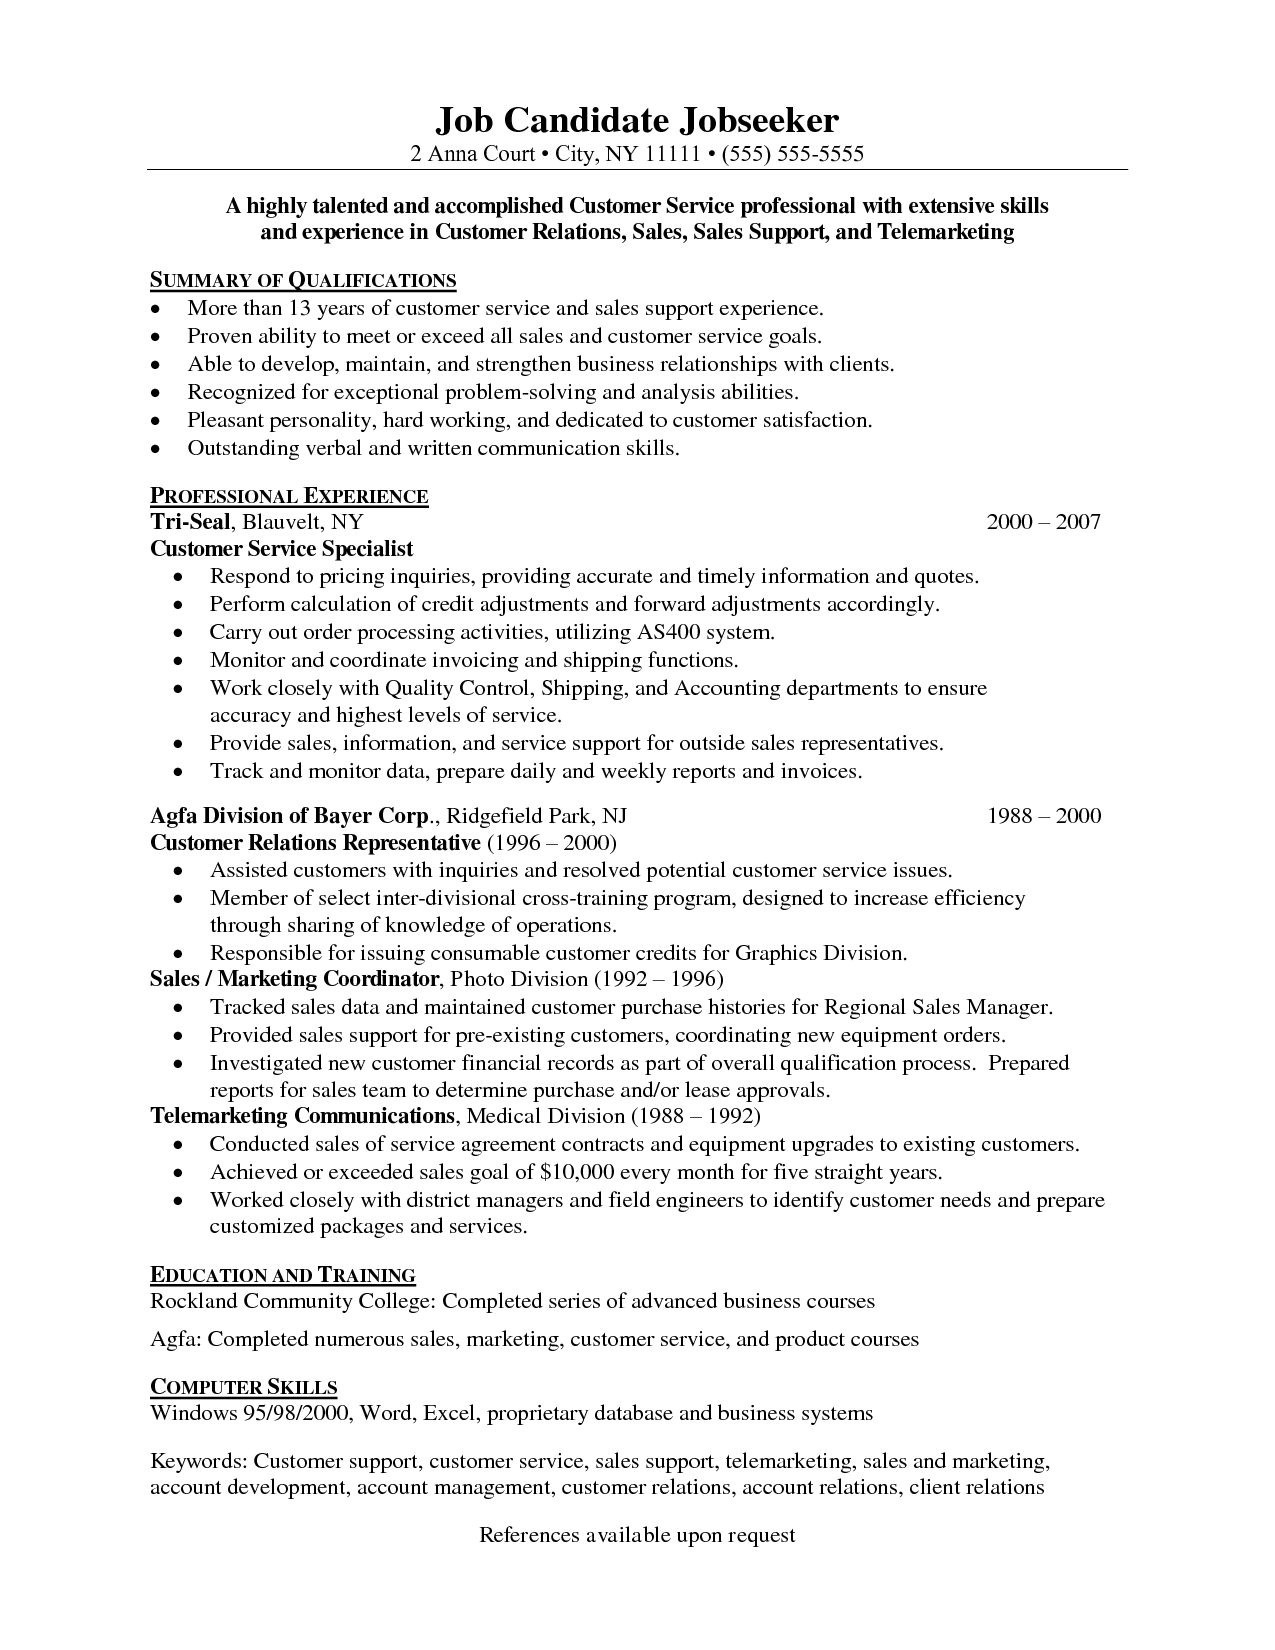 Maintenance Resume Skills - Resume Skills Examples Customer Service Refrence Beautiful Grapher